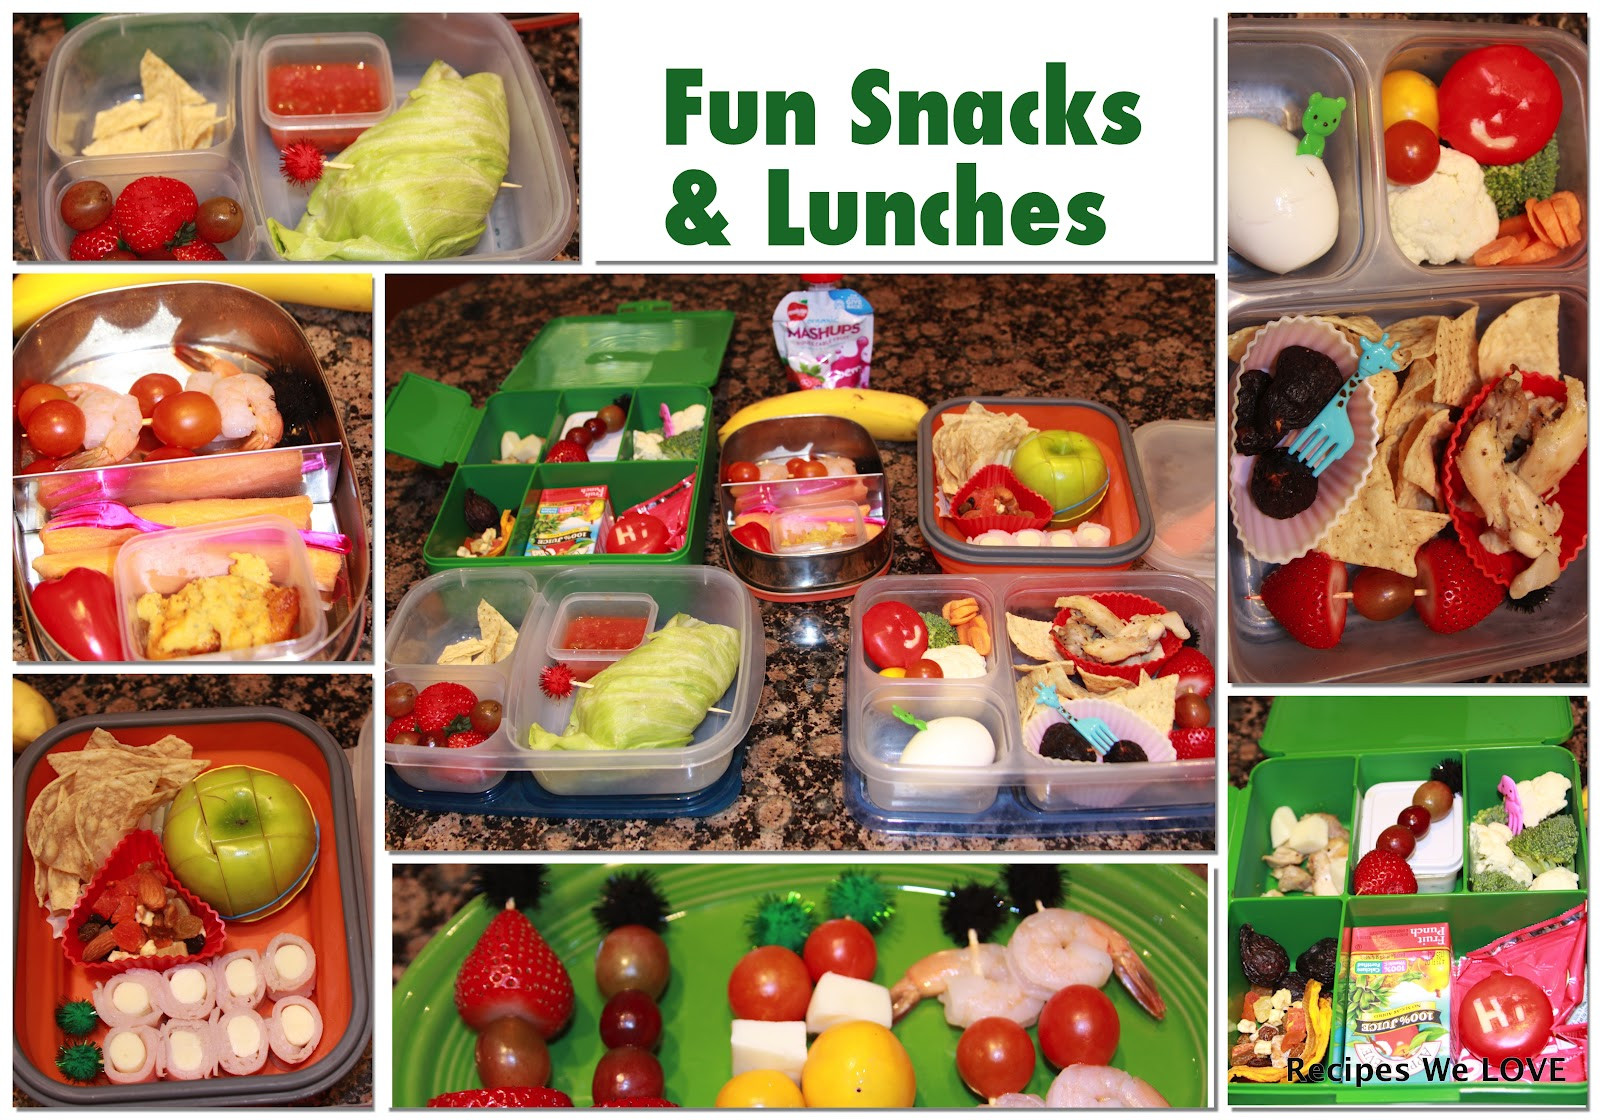 Healthy Snacks For Lunch  Recipes We Love Healthy Kids Lunches and Snacks